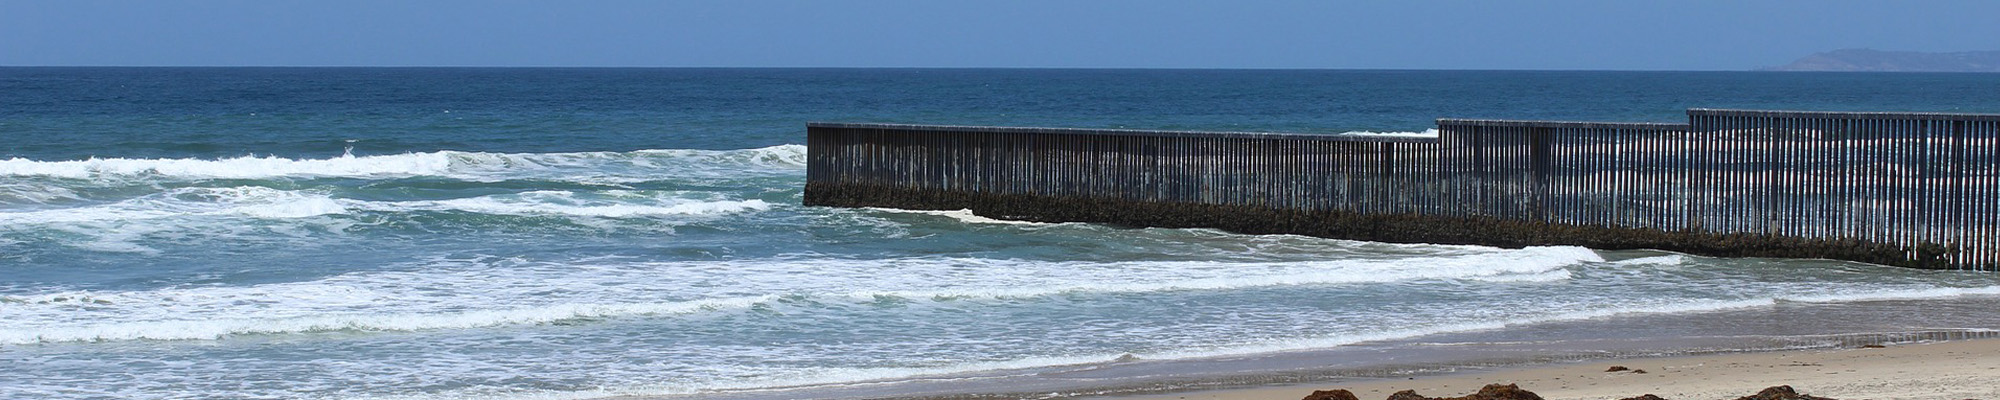 beach border fence San Diego and Tijuana